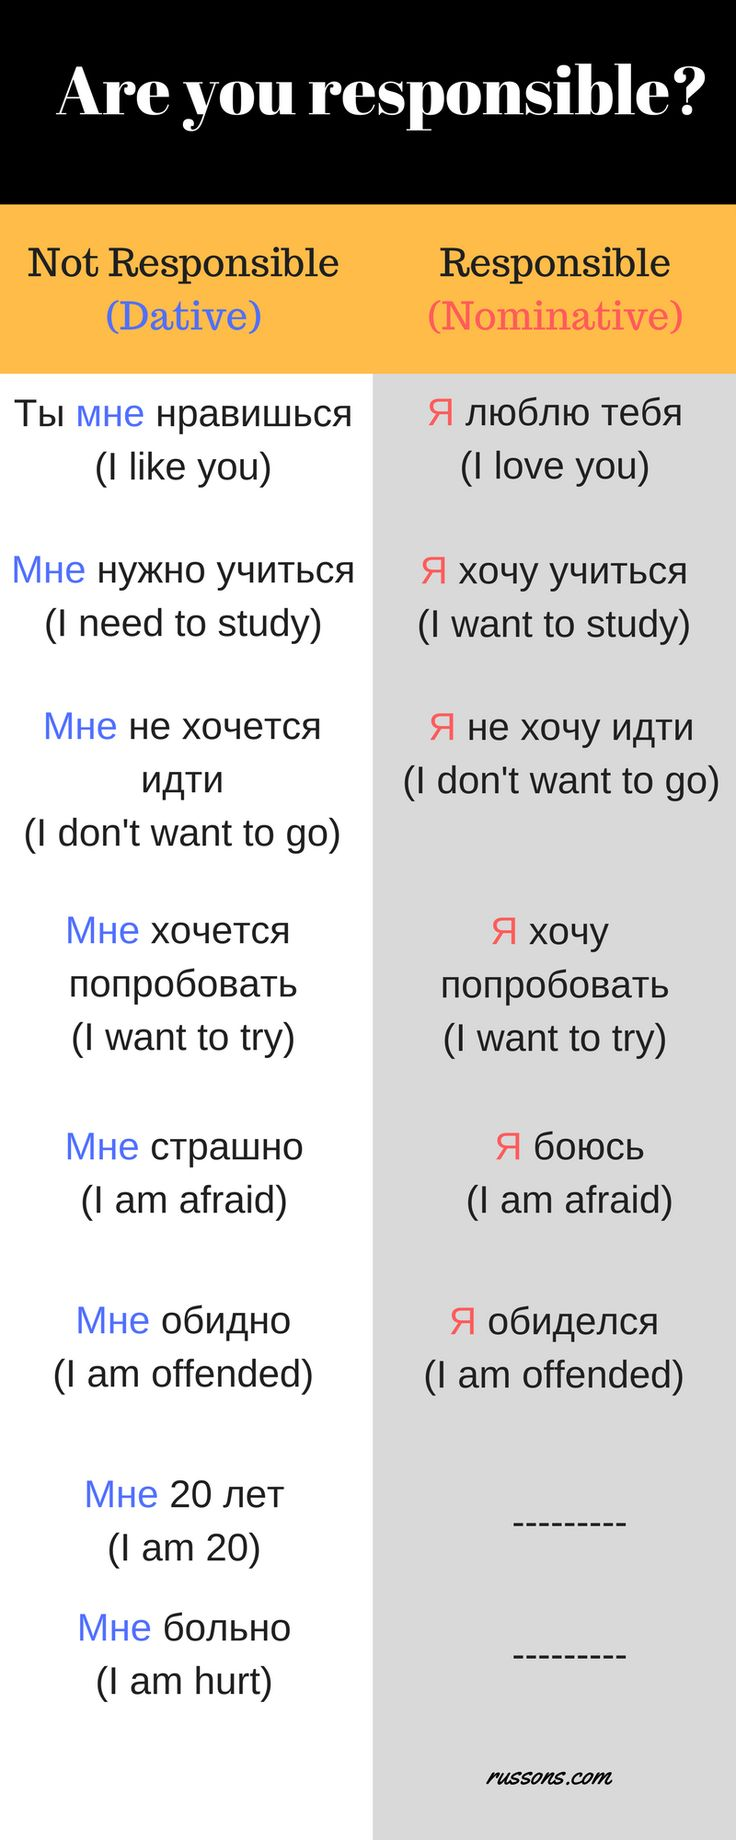 Russians are afraid of responsibility. We are inconfident. So we often prefer the dative case. 'Я' (I) is 'Мне' in the dative case.